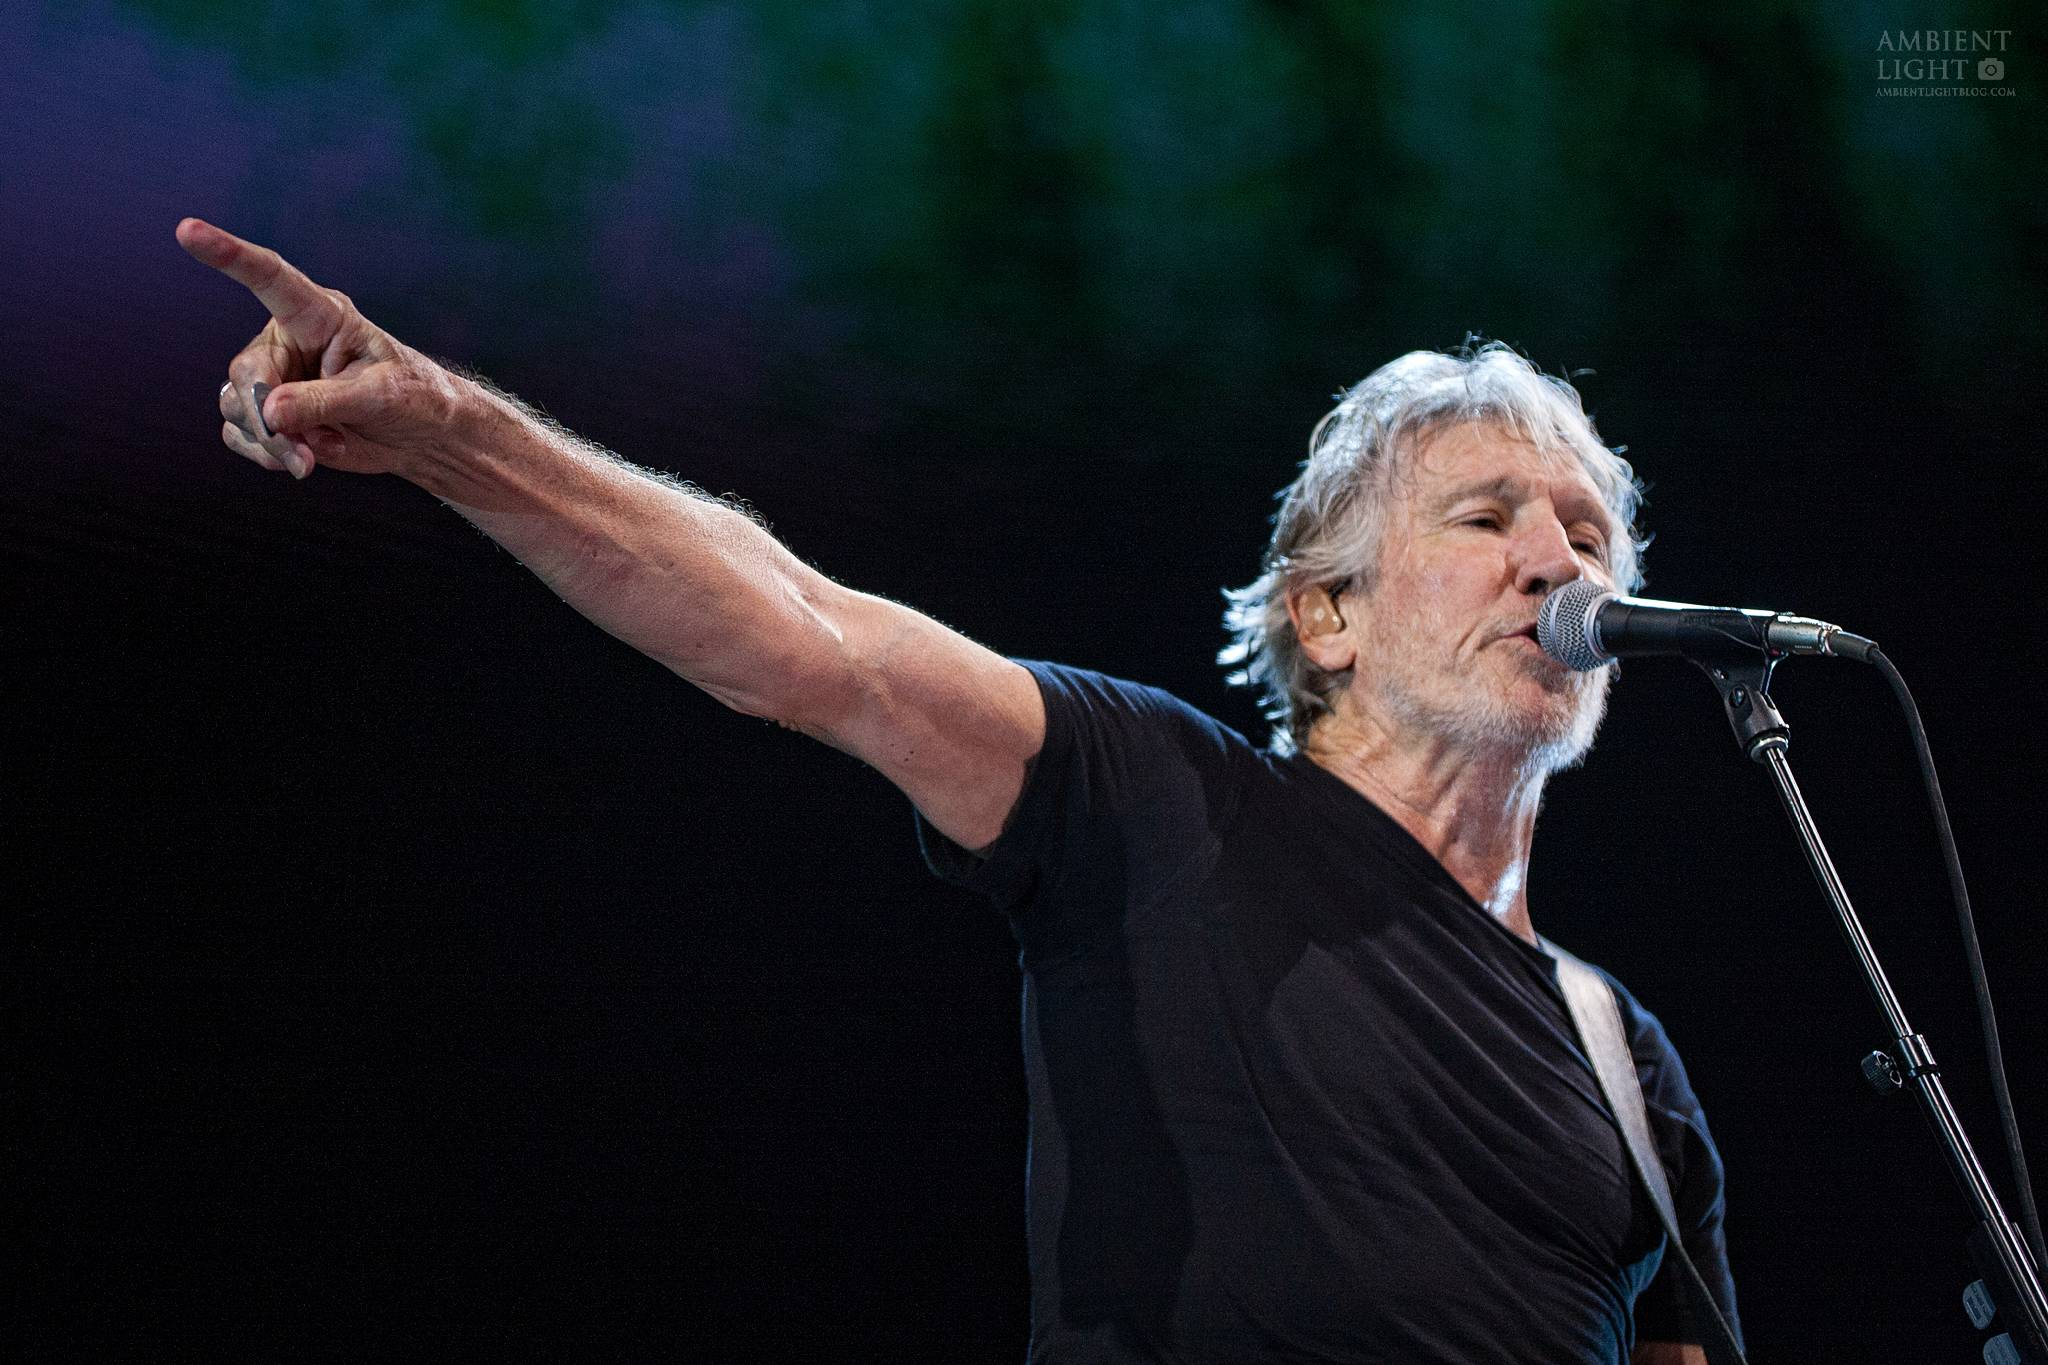 concert review roger waters auckland new zealand 2018. Black Bedroom Furniture Sets. Home Design Ideas